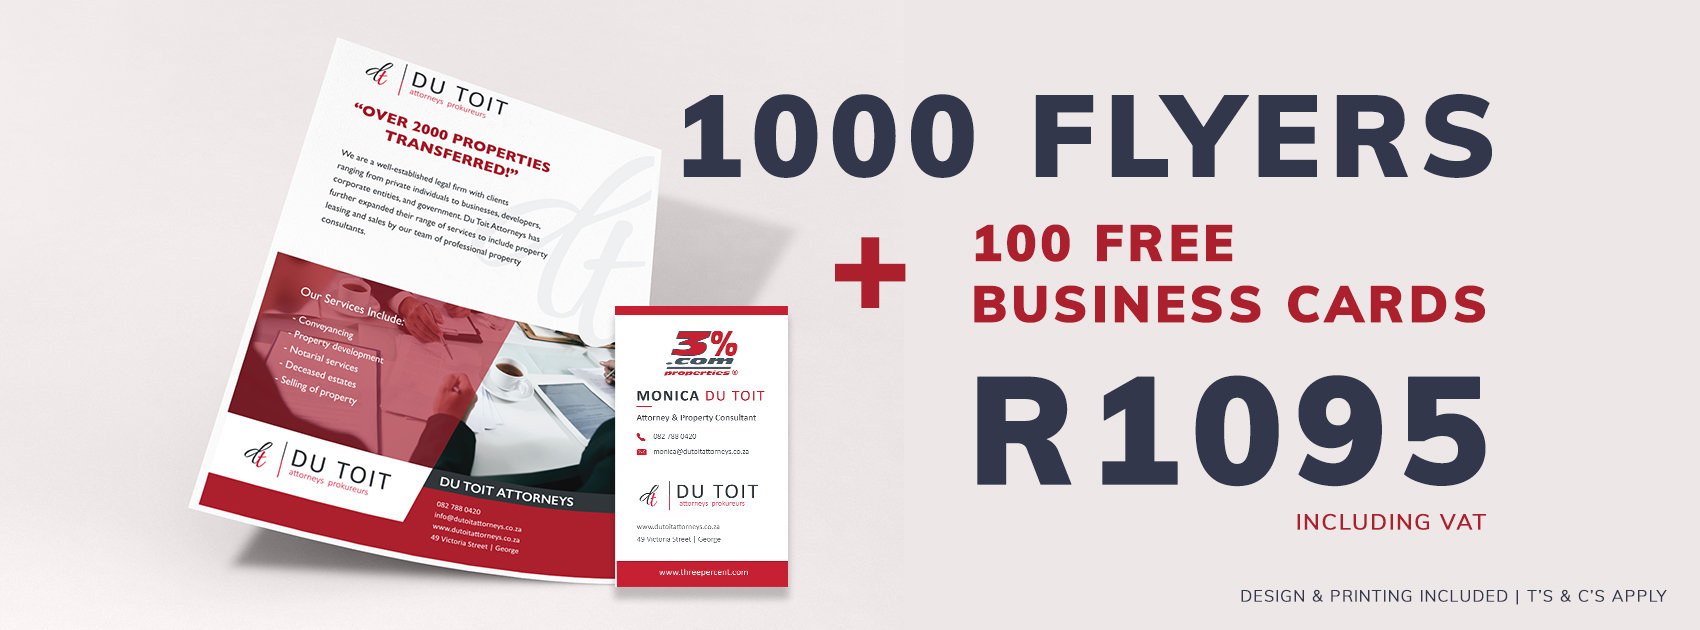 Digital marketing agency in george garden route south africa 1000 flyers special sparklabs reheart Images